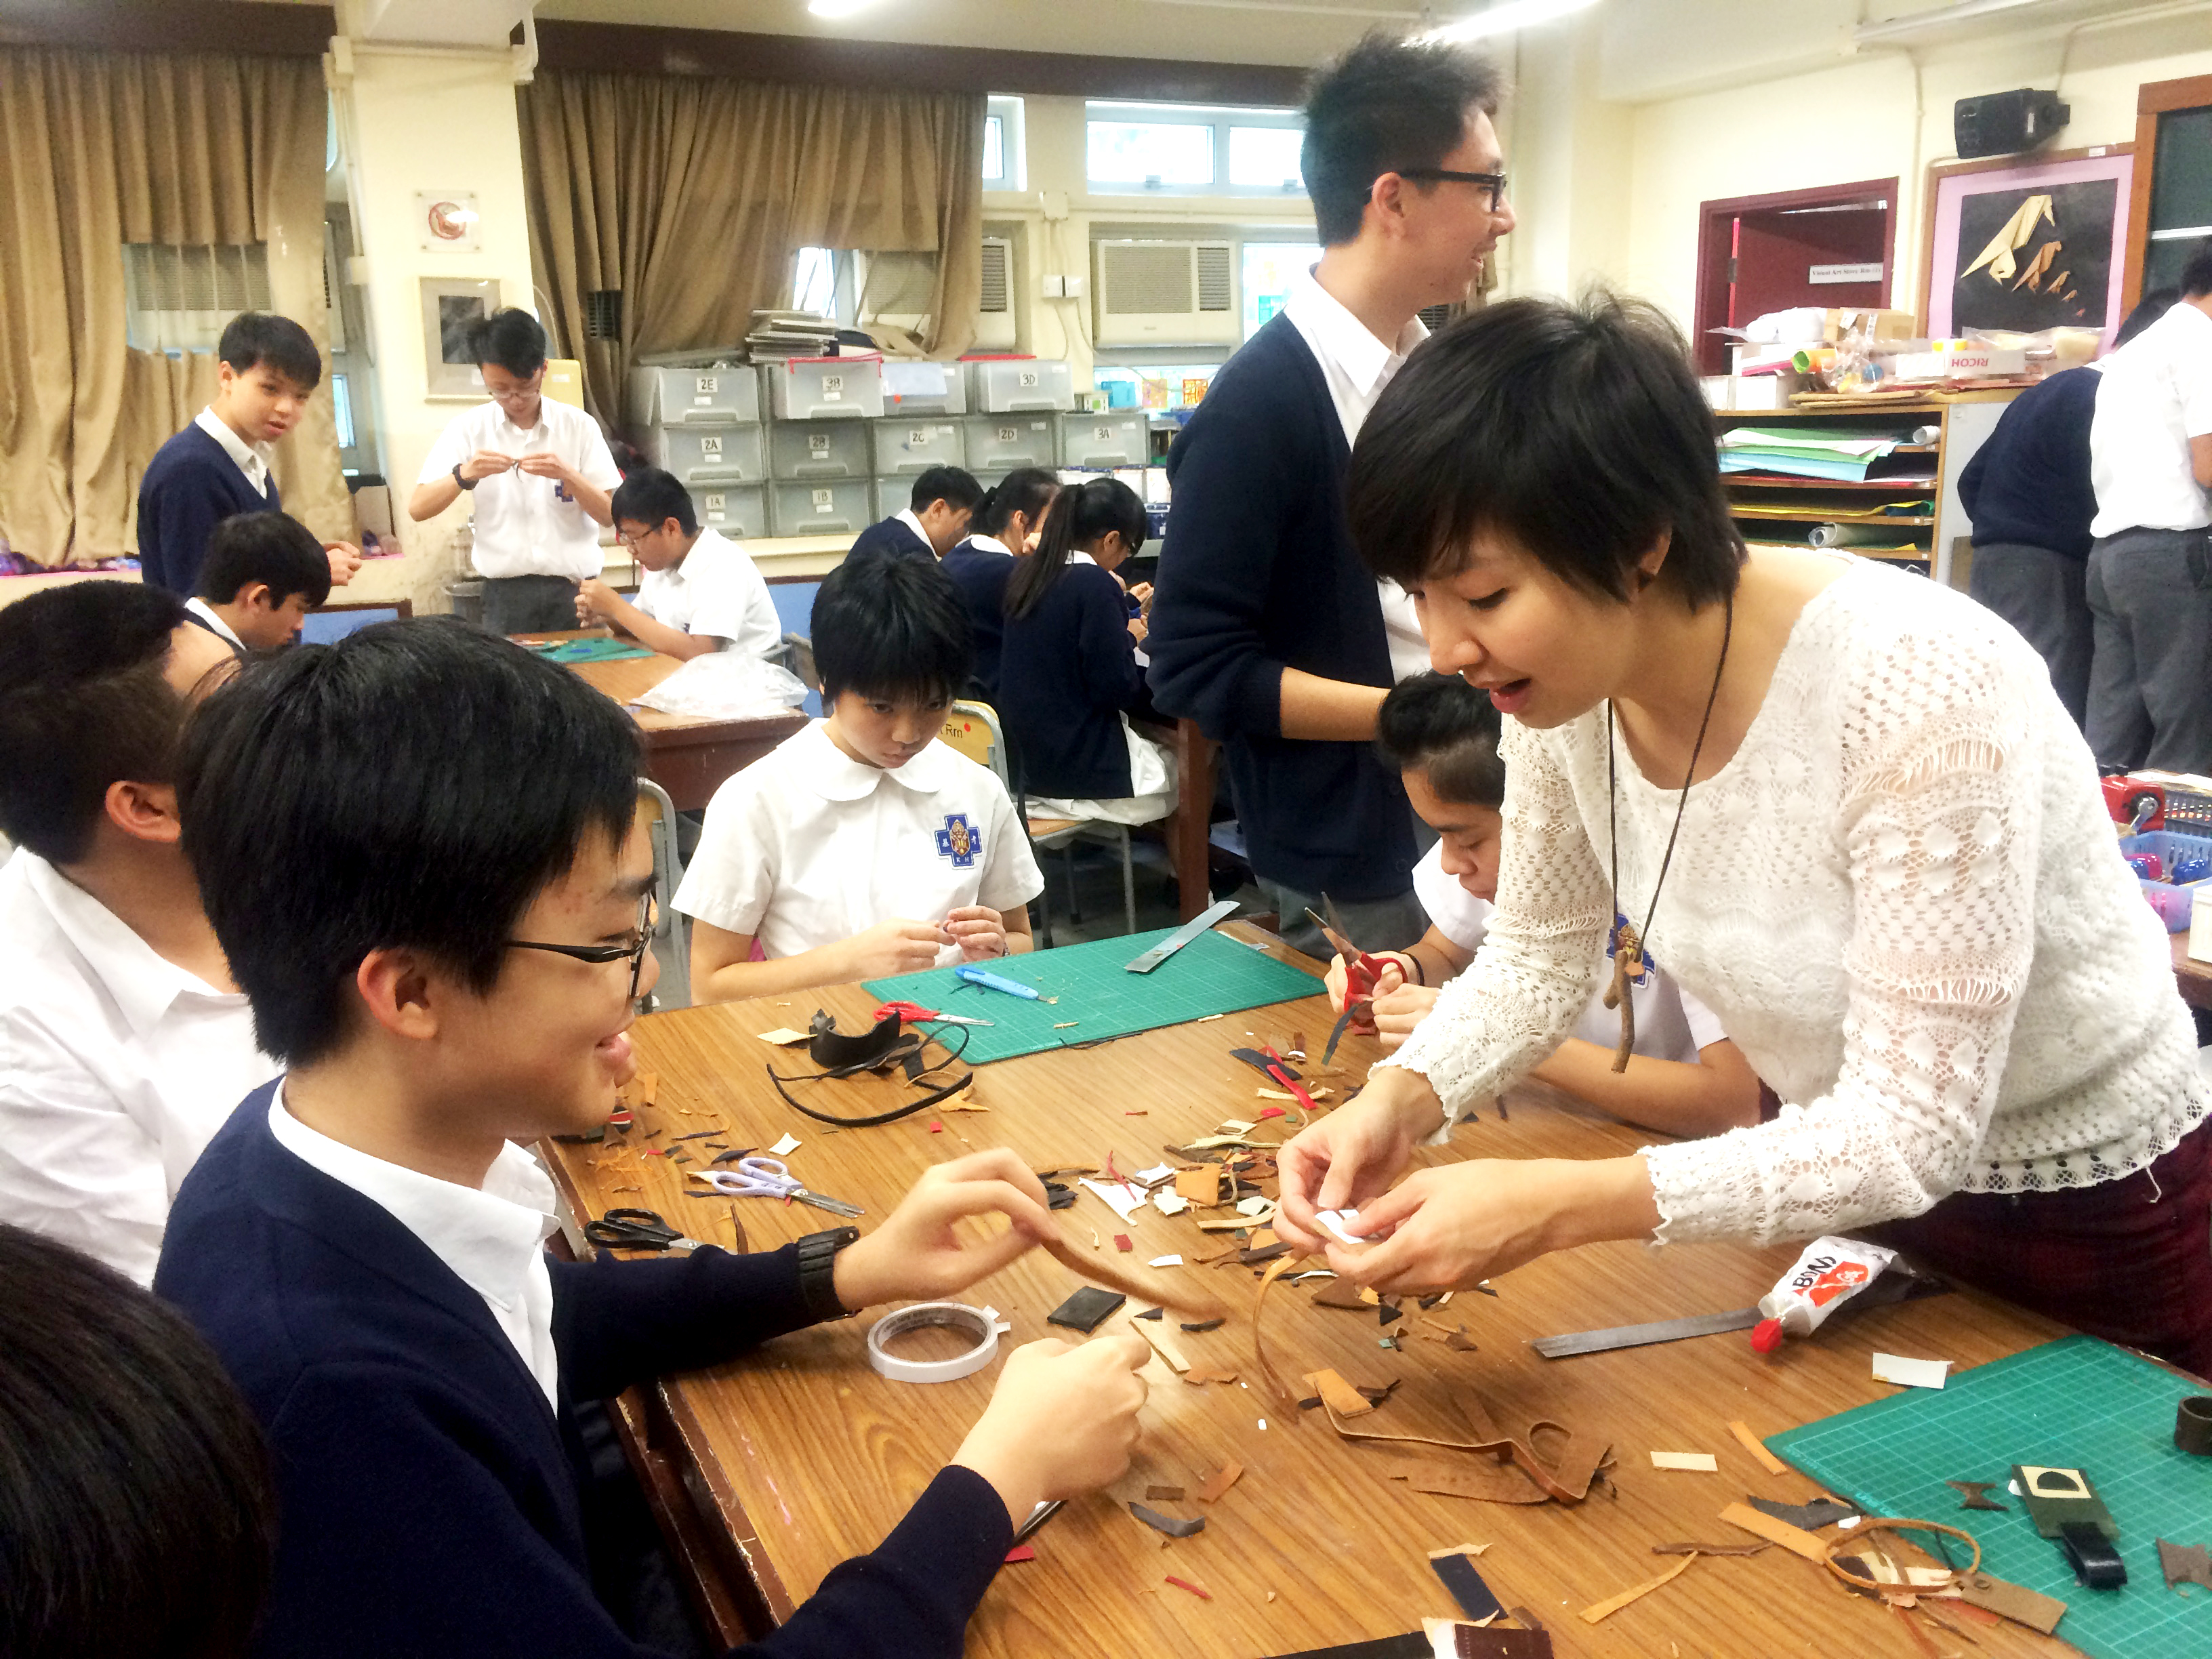 upcycle workshop with students